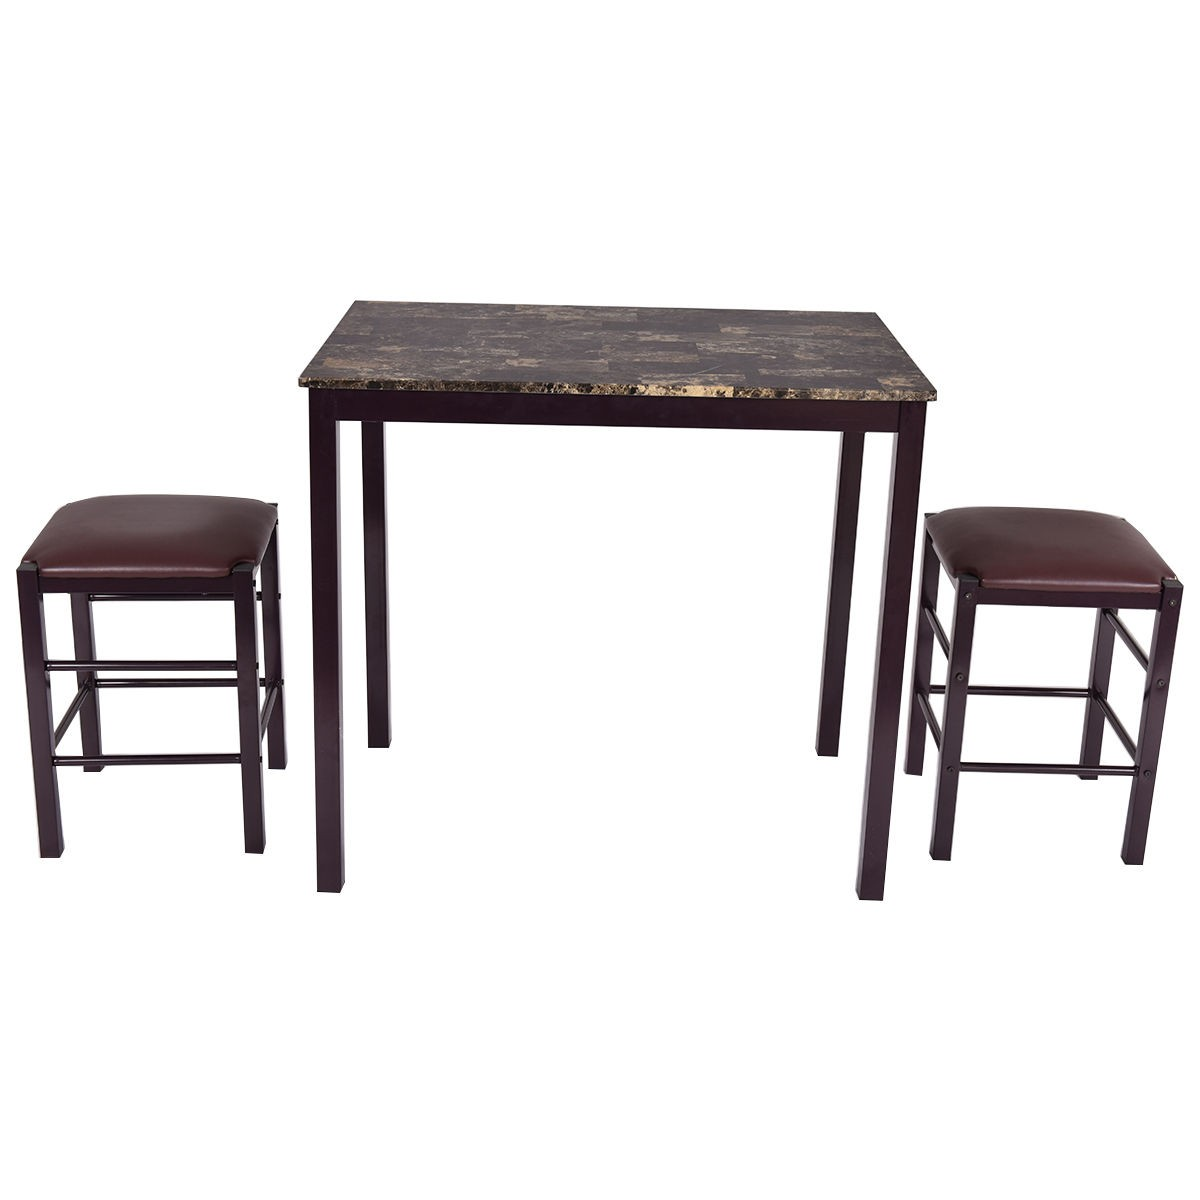 3 Pcs Modern Counter Height Dining Set Table And 2 Chairs: 3 Pcs Dining Counter Height Set Faux Marble Table 2 Chairs